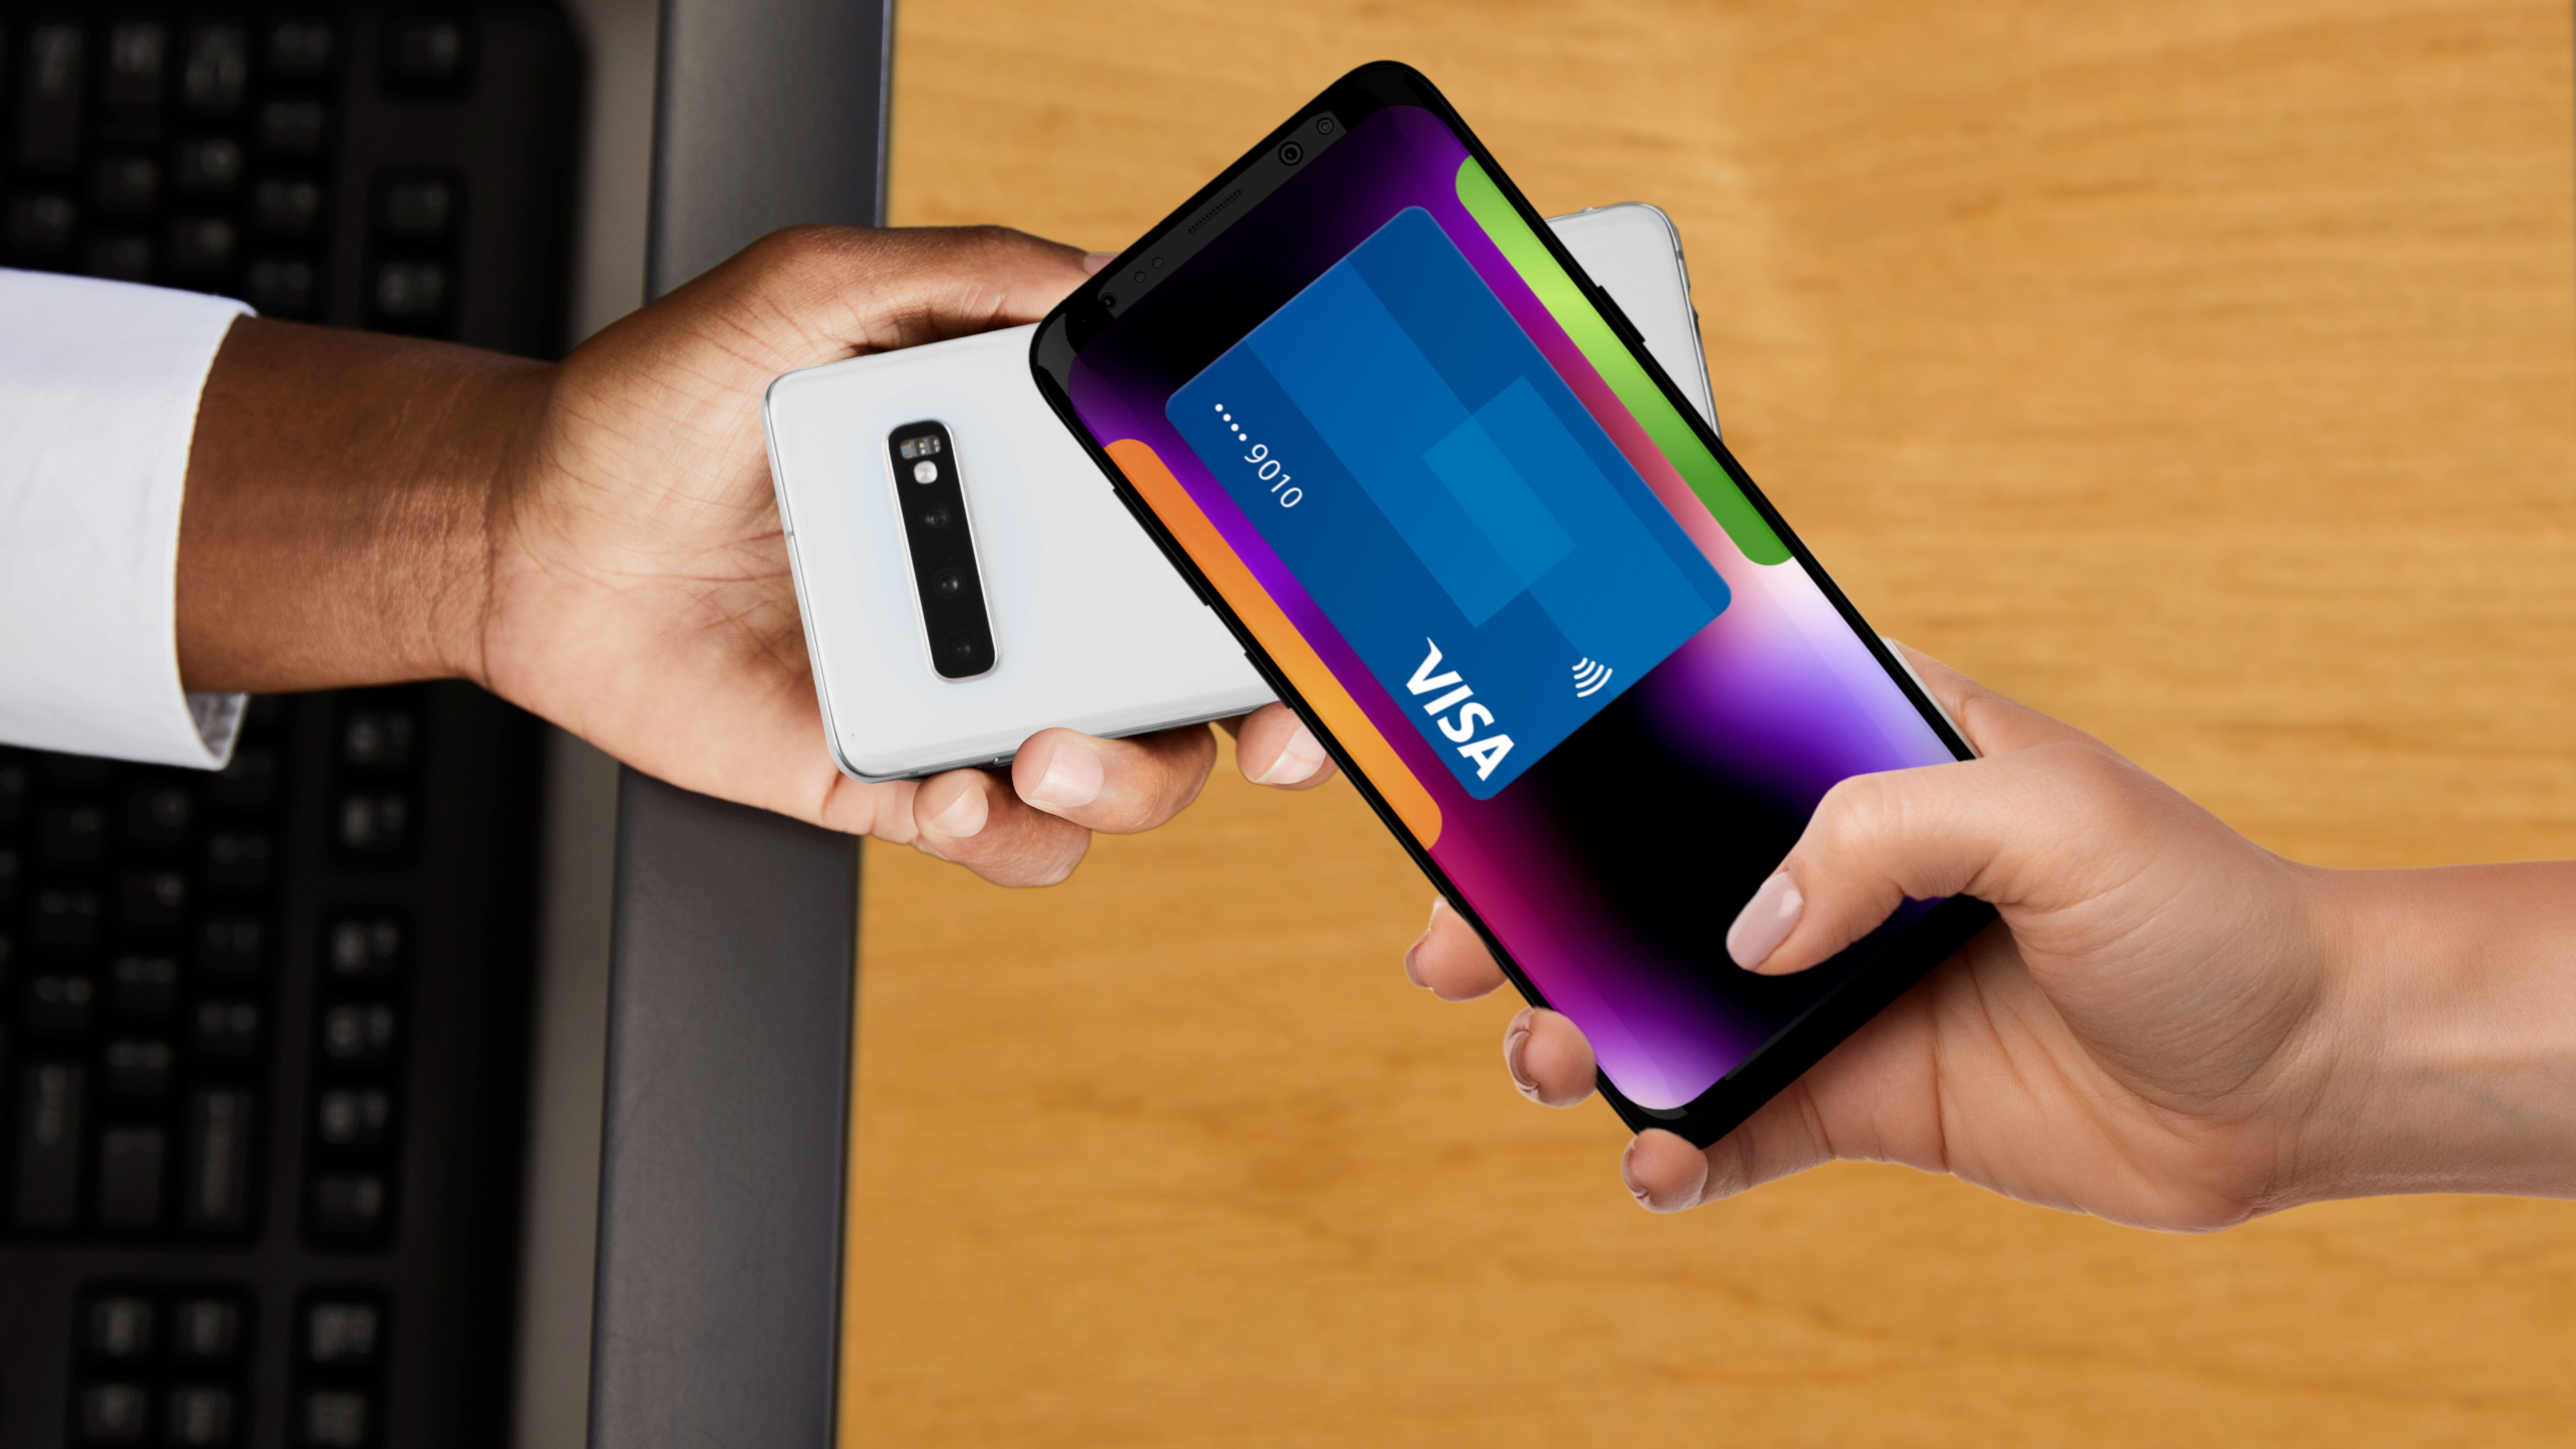 Visa announces new Tap to Phone solution, that turns Android phones into fully untethered mobile contactless payment terminals.